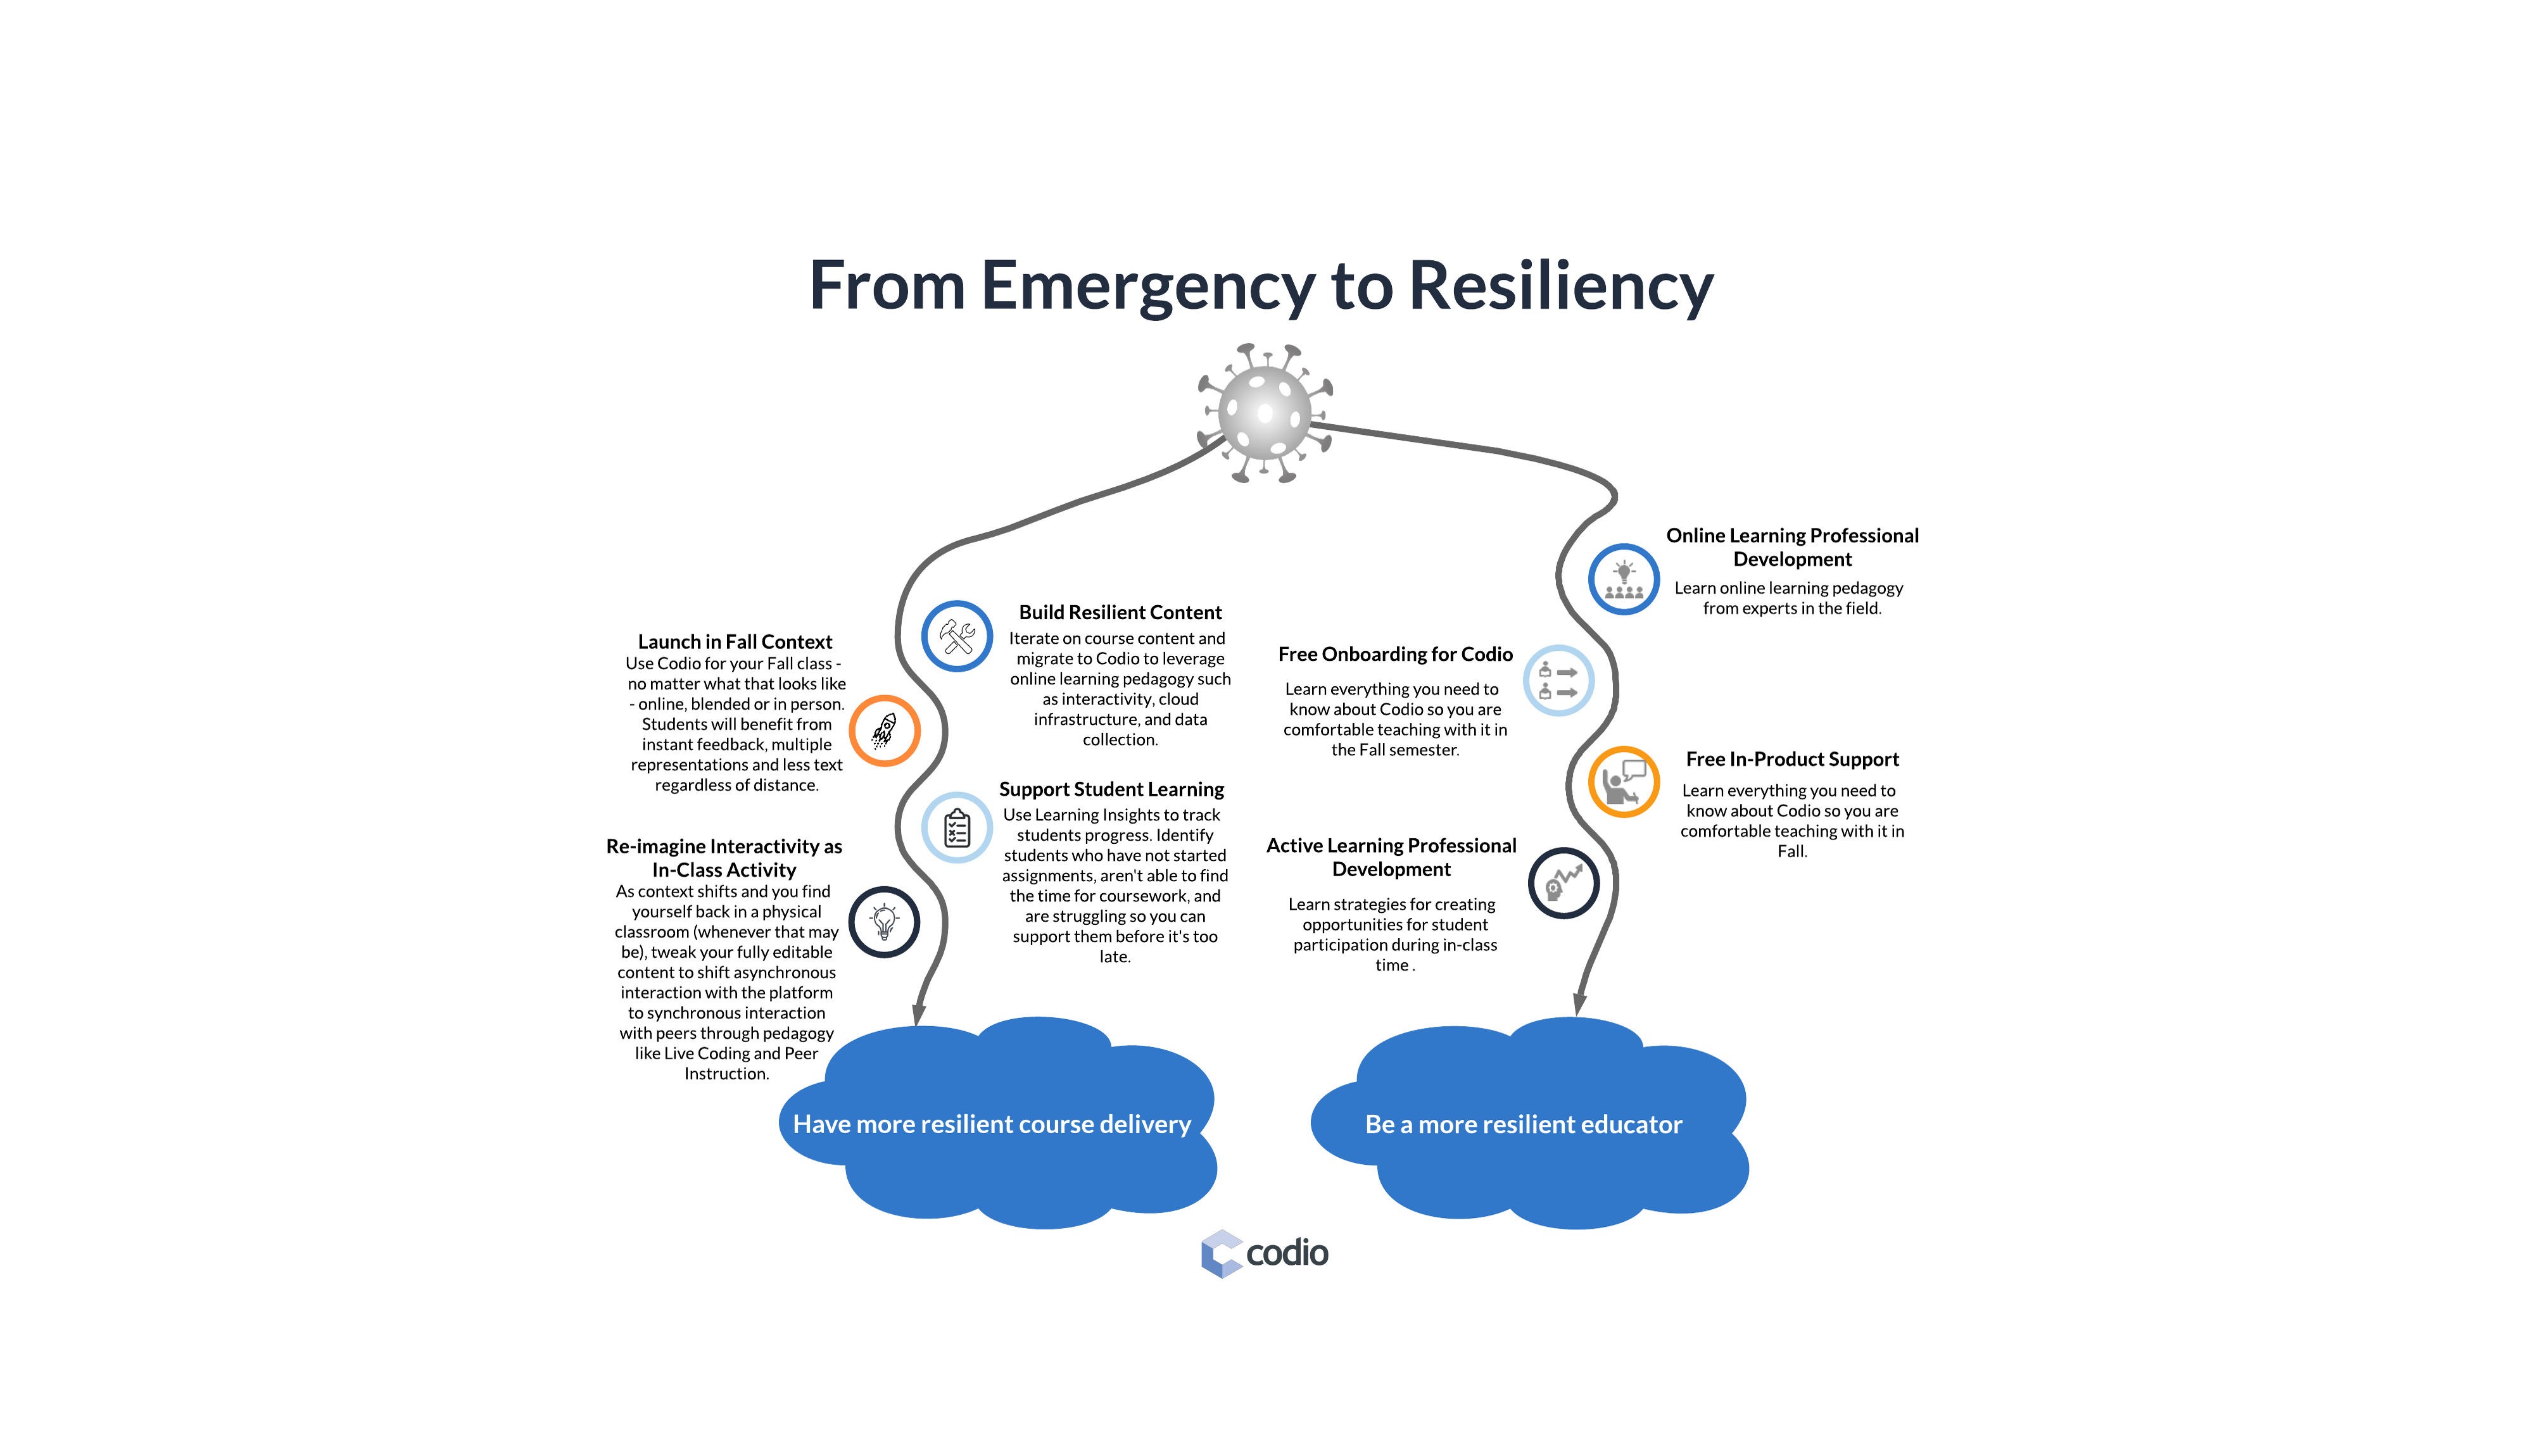 Codio Launches Resiliency in CS Education Campaign